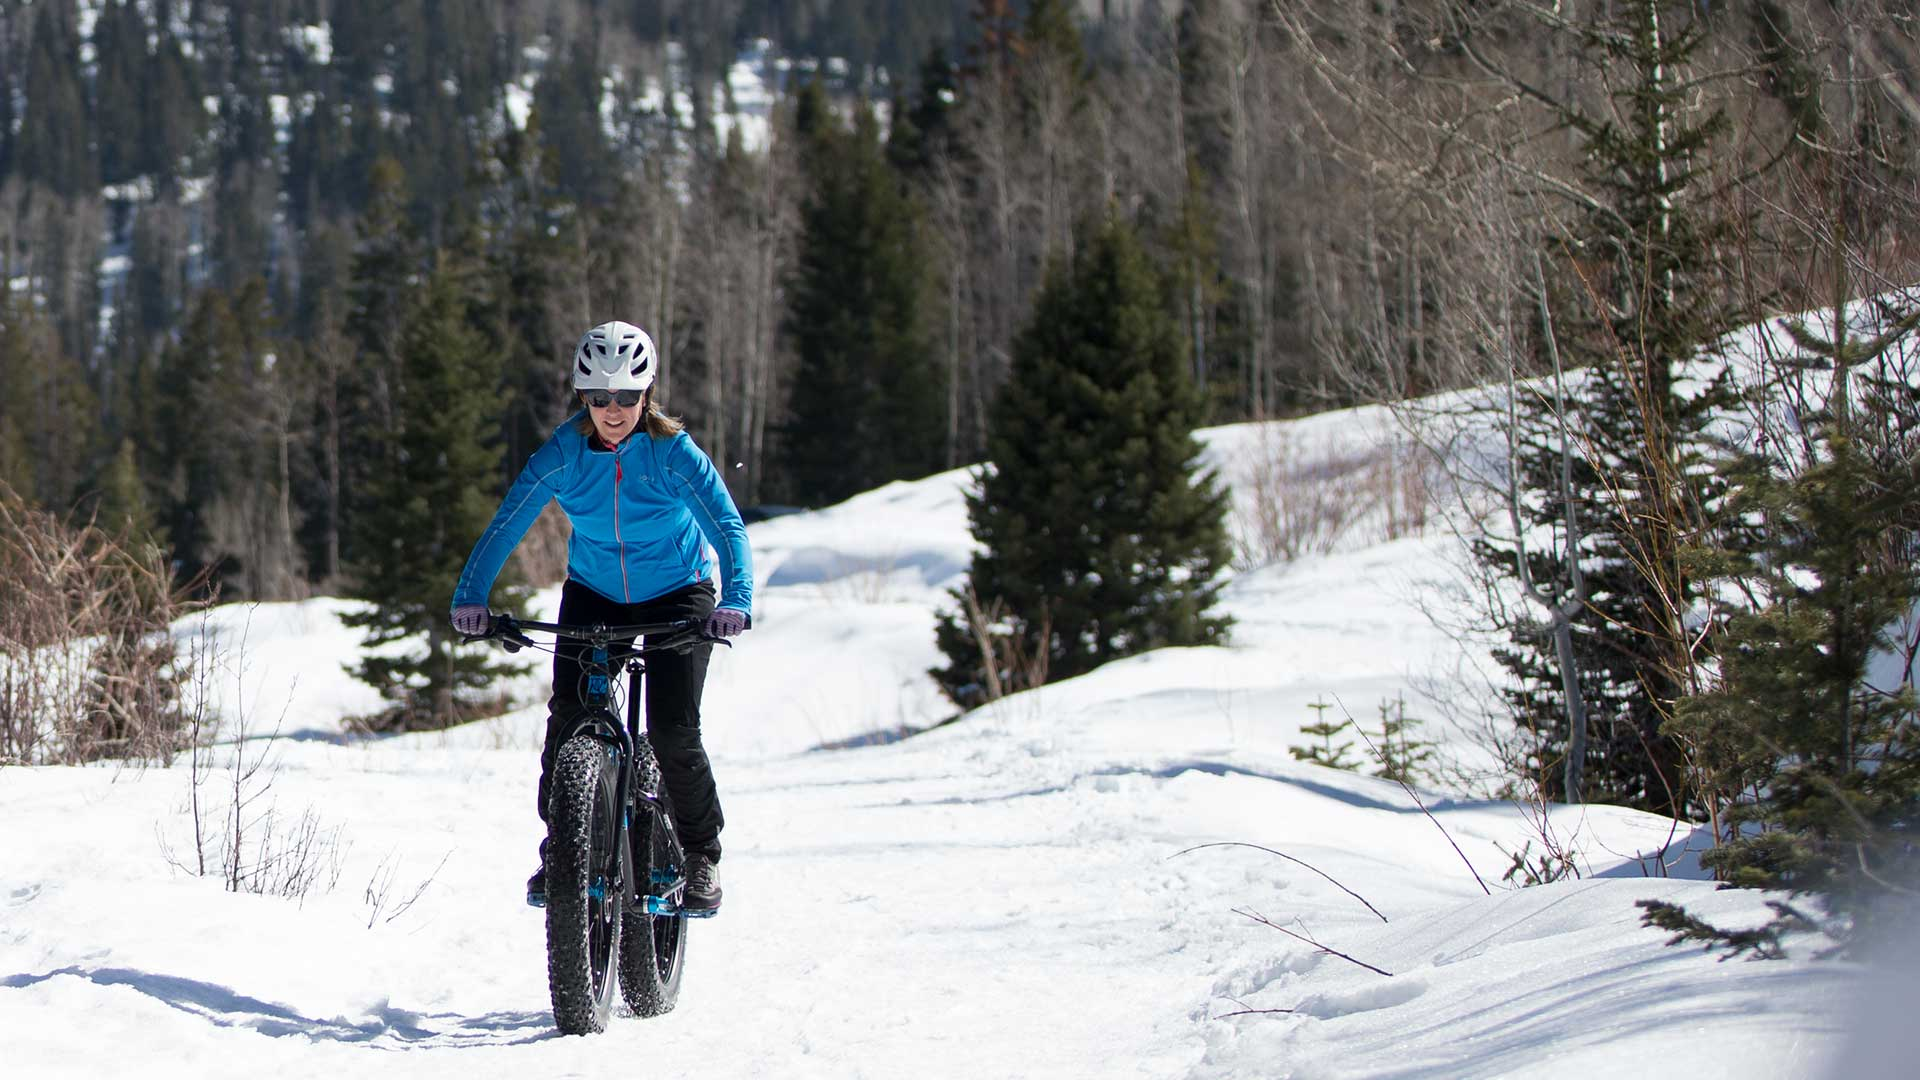 Guided Epic Mountain Biking Tour from White Pine Touring in Park City, UT.